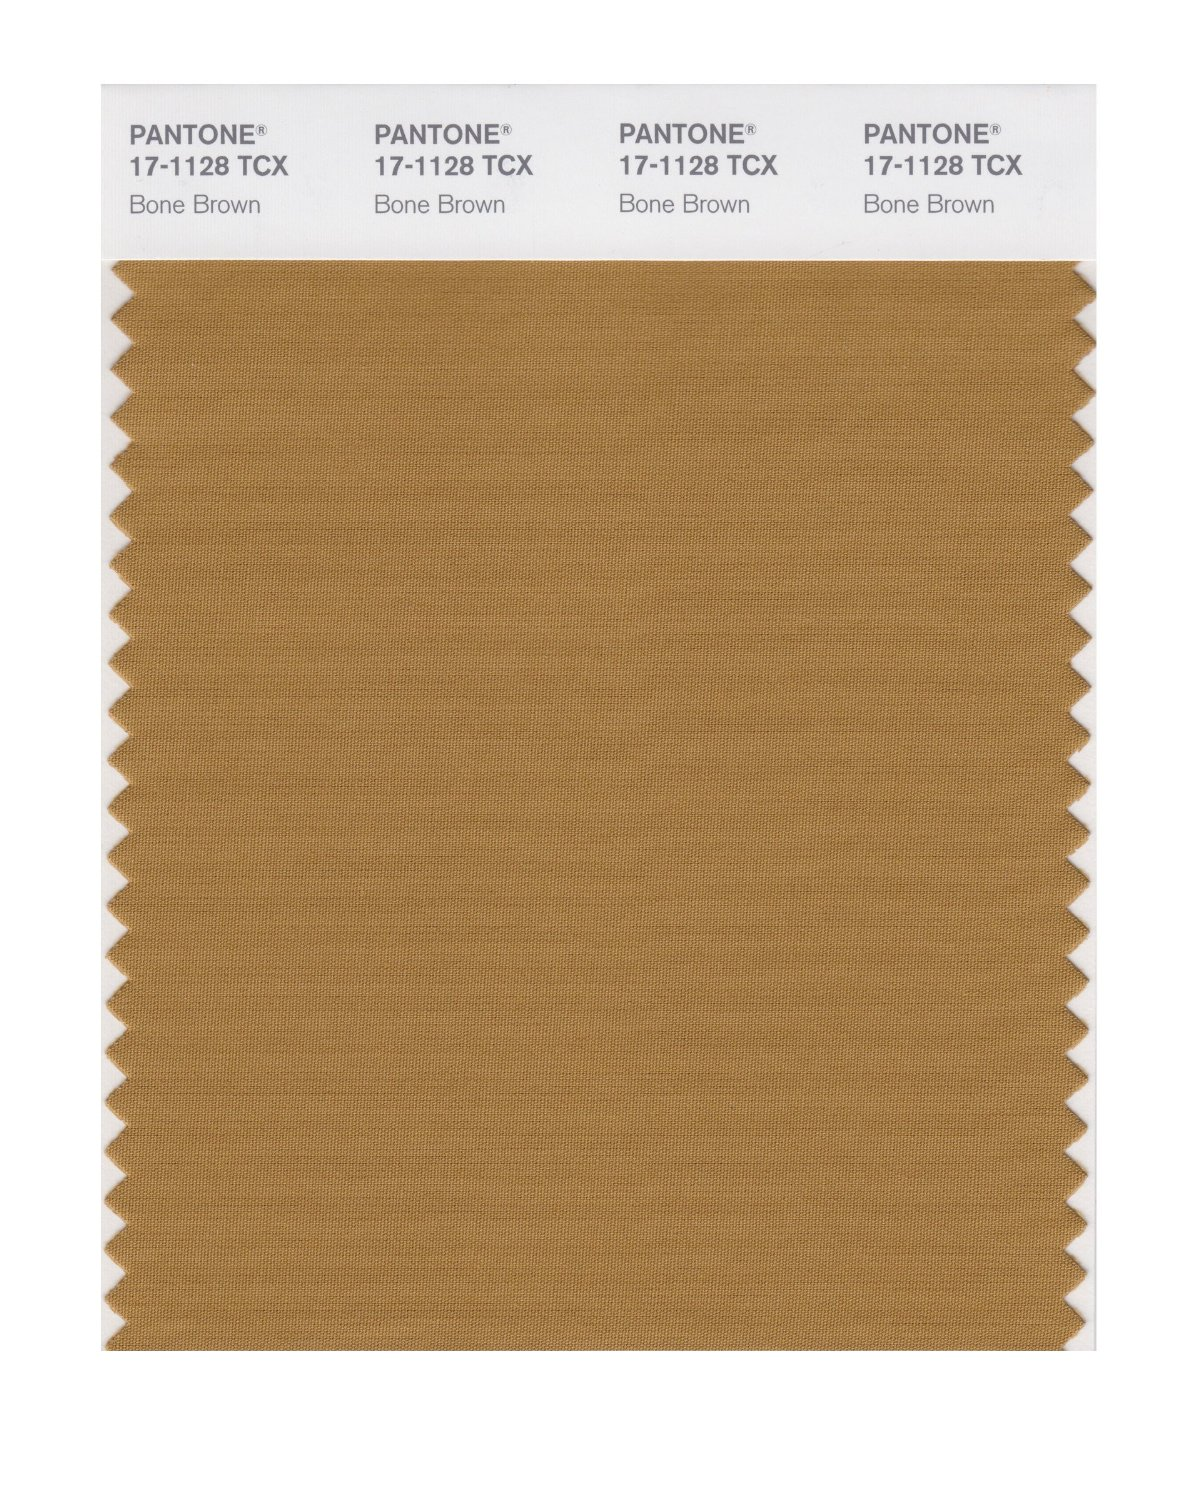 Pantone Smart Swatch 17-1128 Bone Brown